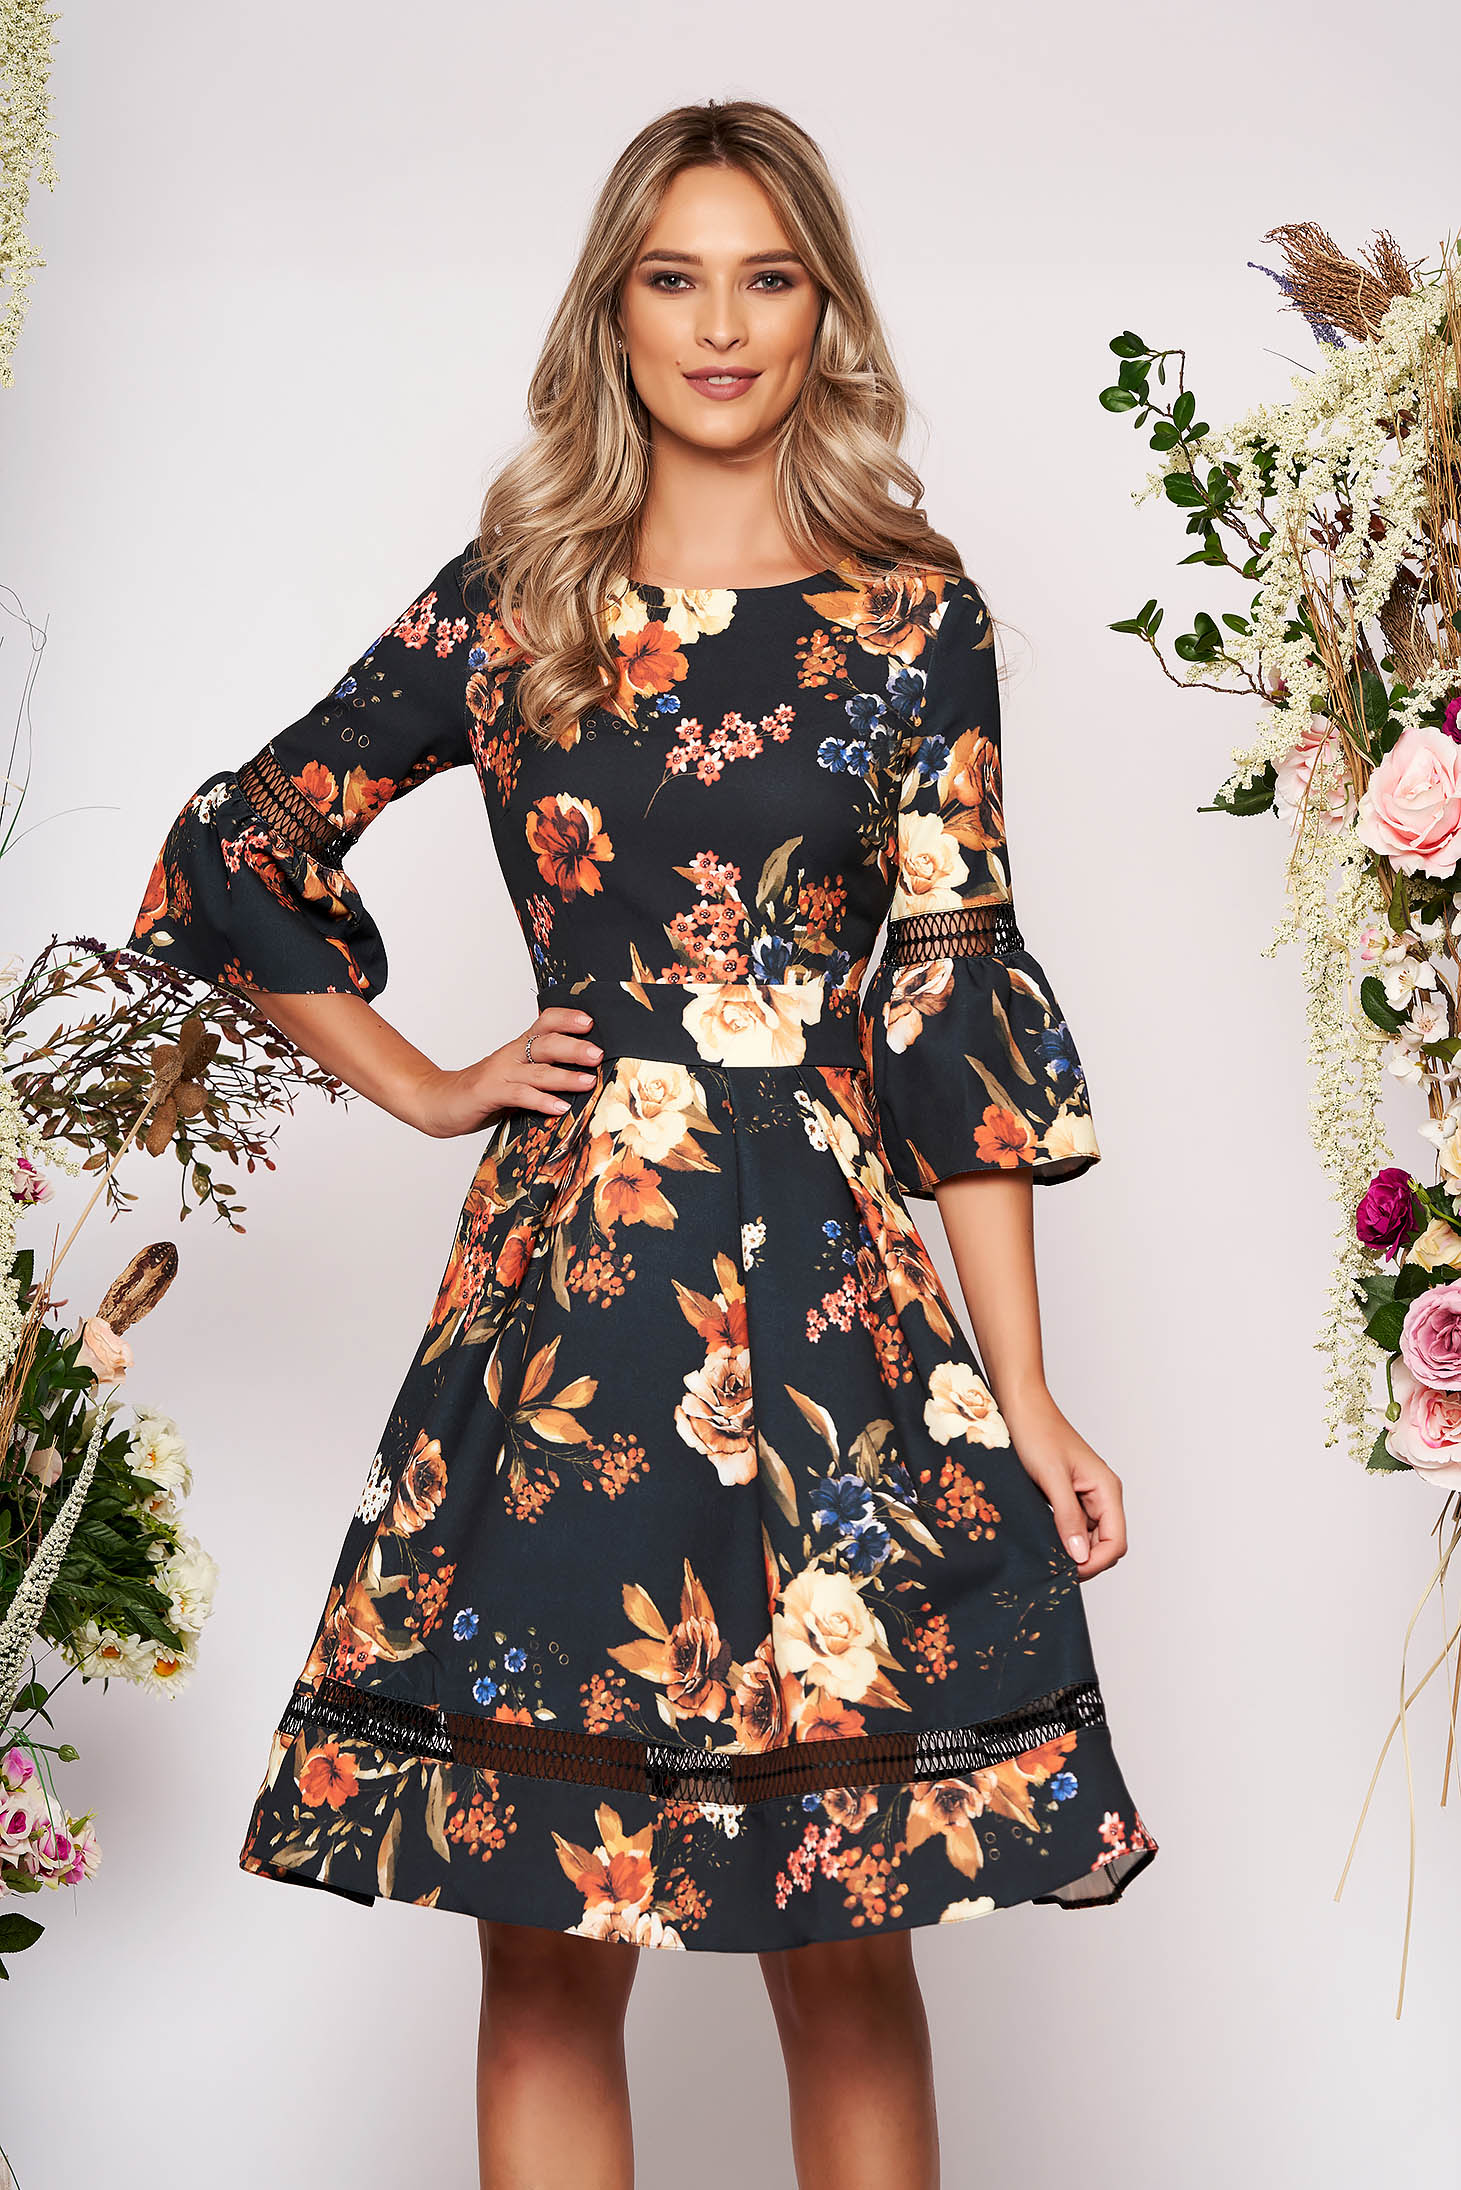 Black dress occasional cloche with floral print bell sleeves neckline